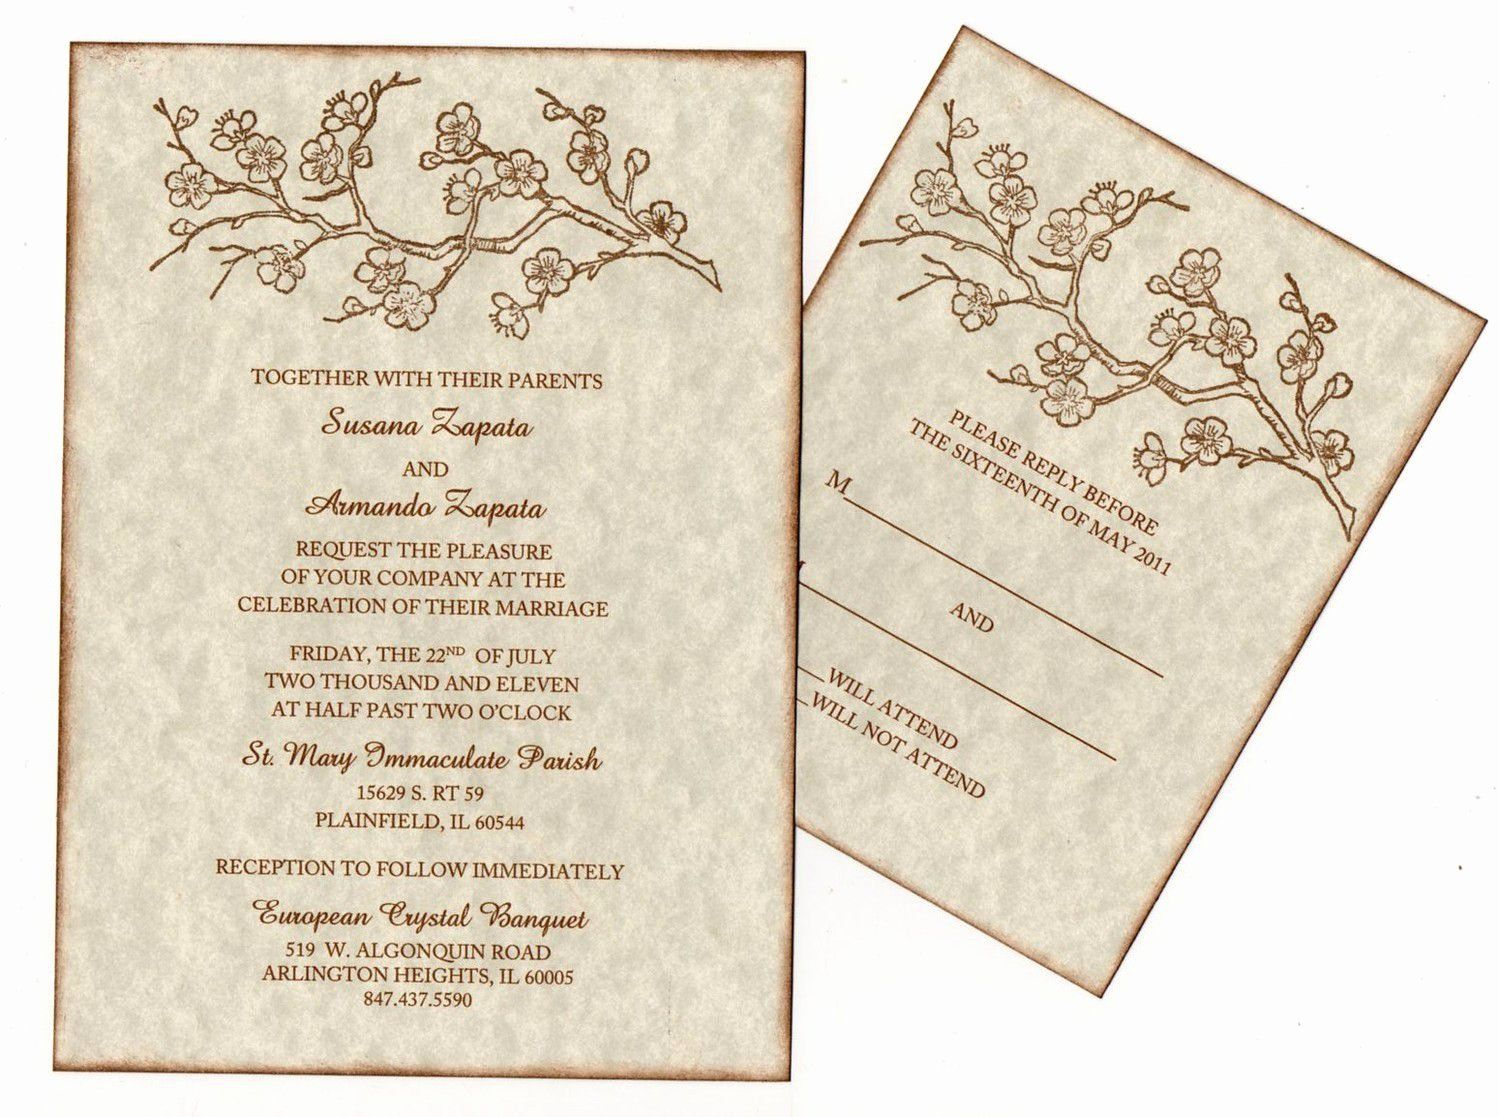 Hindu Wedding Invitation Template Inspirational Wedding Invite Indian Wedding Invitation Card Design Indian Wedding Invitation Cards Wedding Invitation Samples